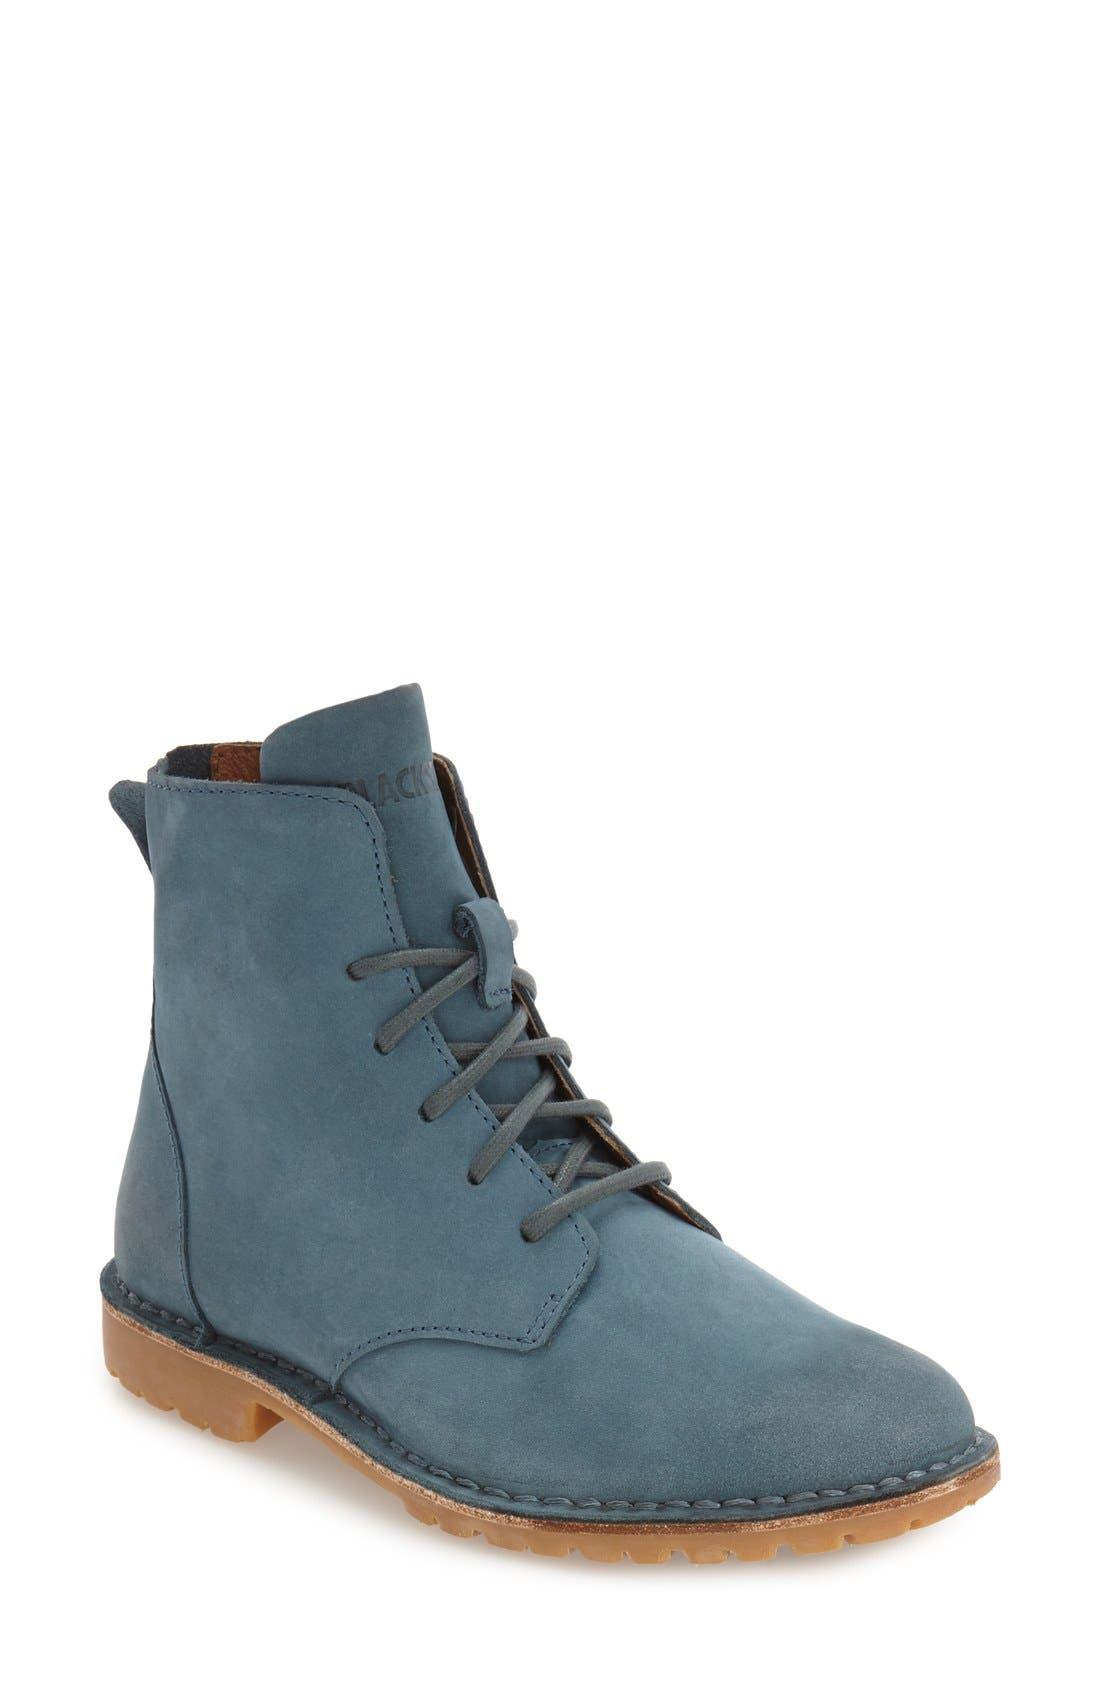 Alternate Image 1 Selected - Blackstone 'KL67' Lace-Up Boot (Women)